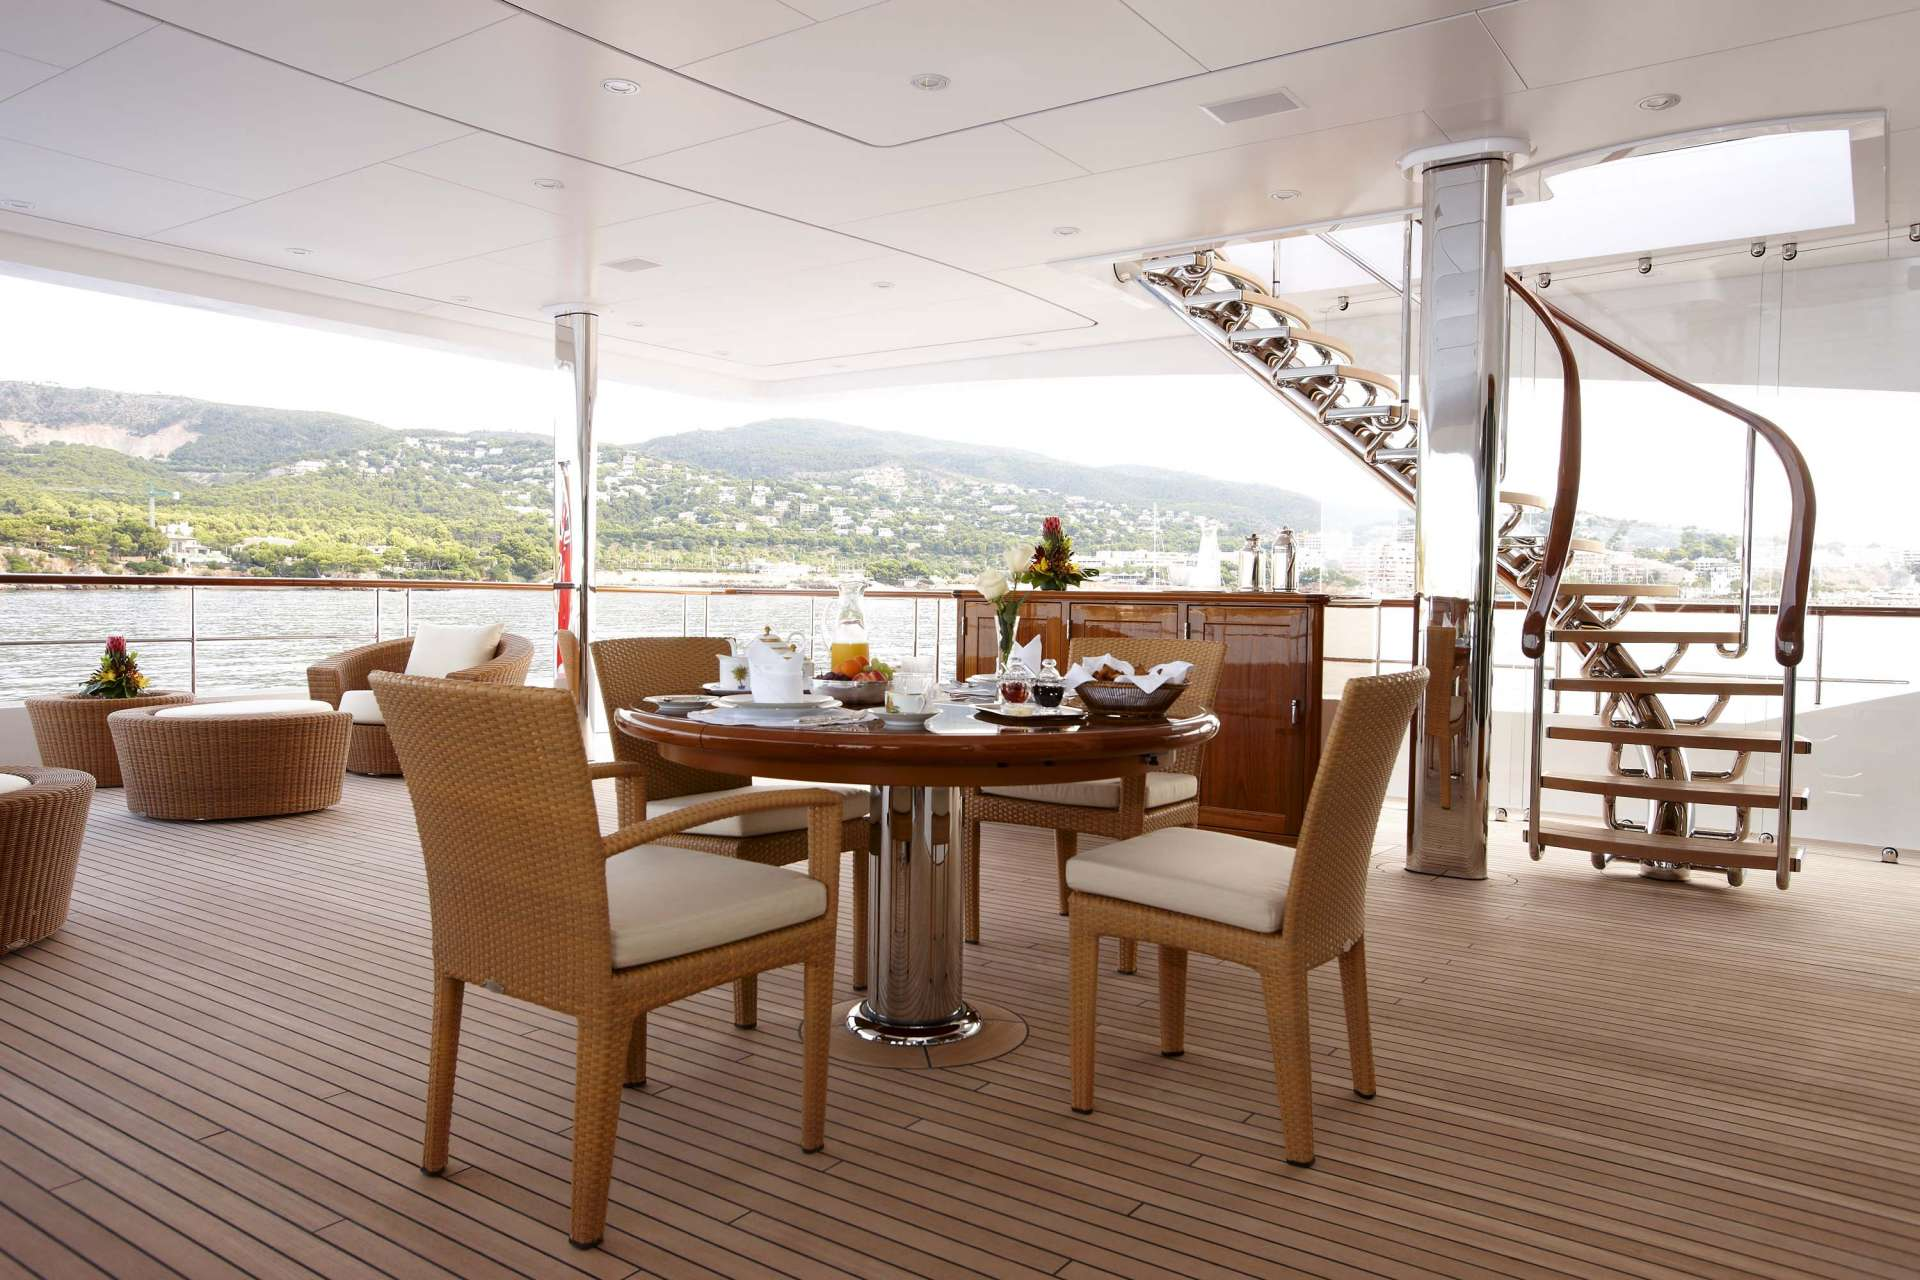 Lady+Christine_Exterior_LC_Owners_deck_01__1920